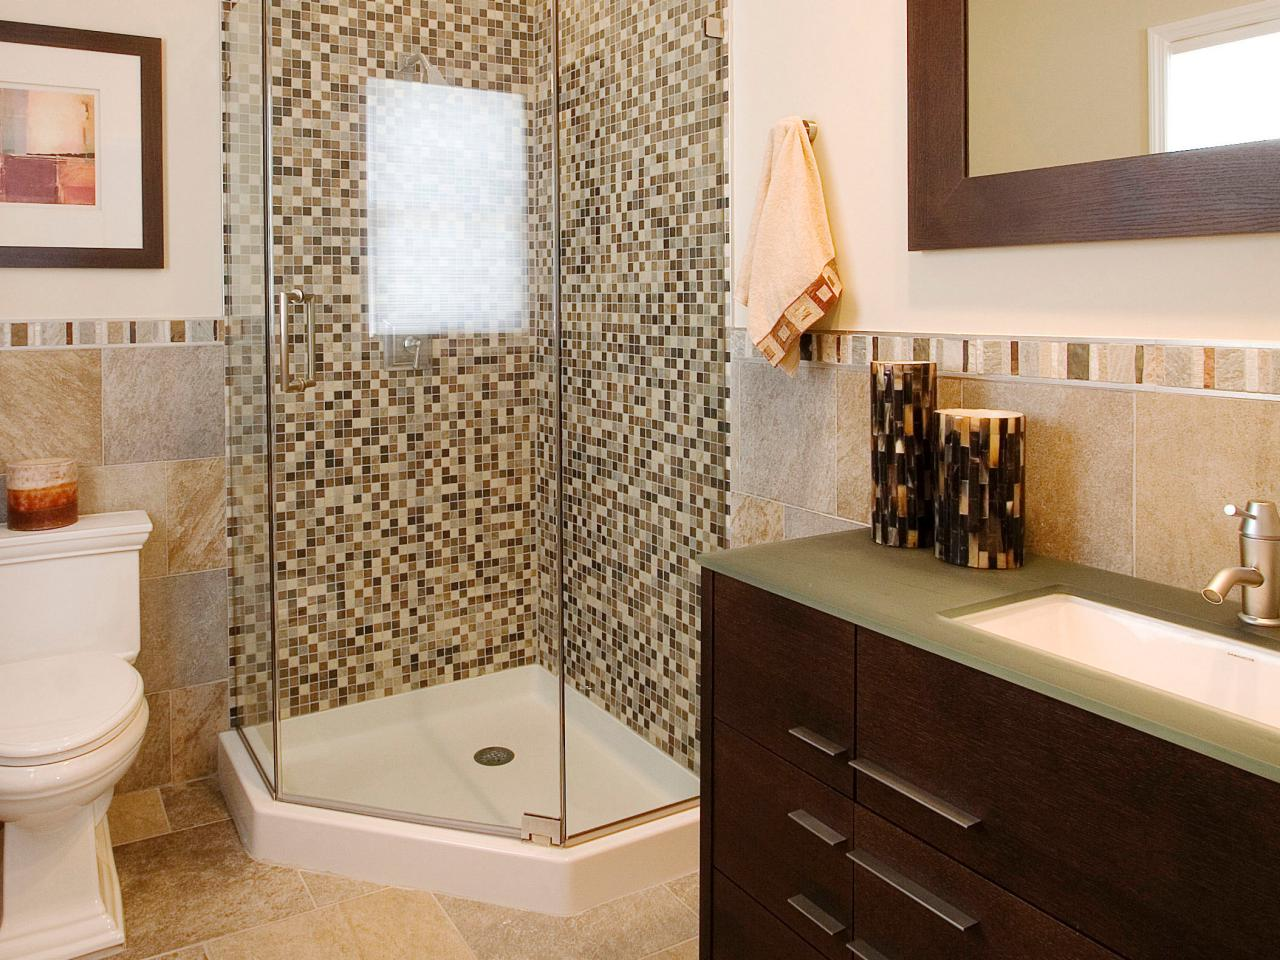 Tips to remodel small bathroom midcityeast - Small full bathroom remodel ideas ...